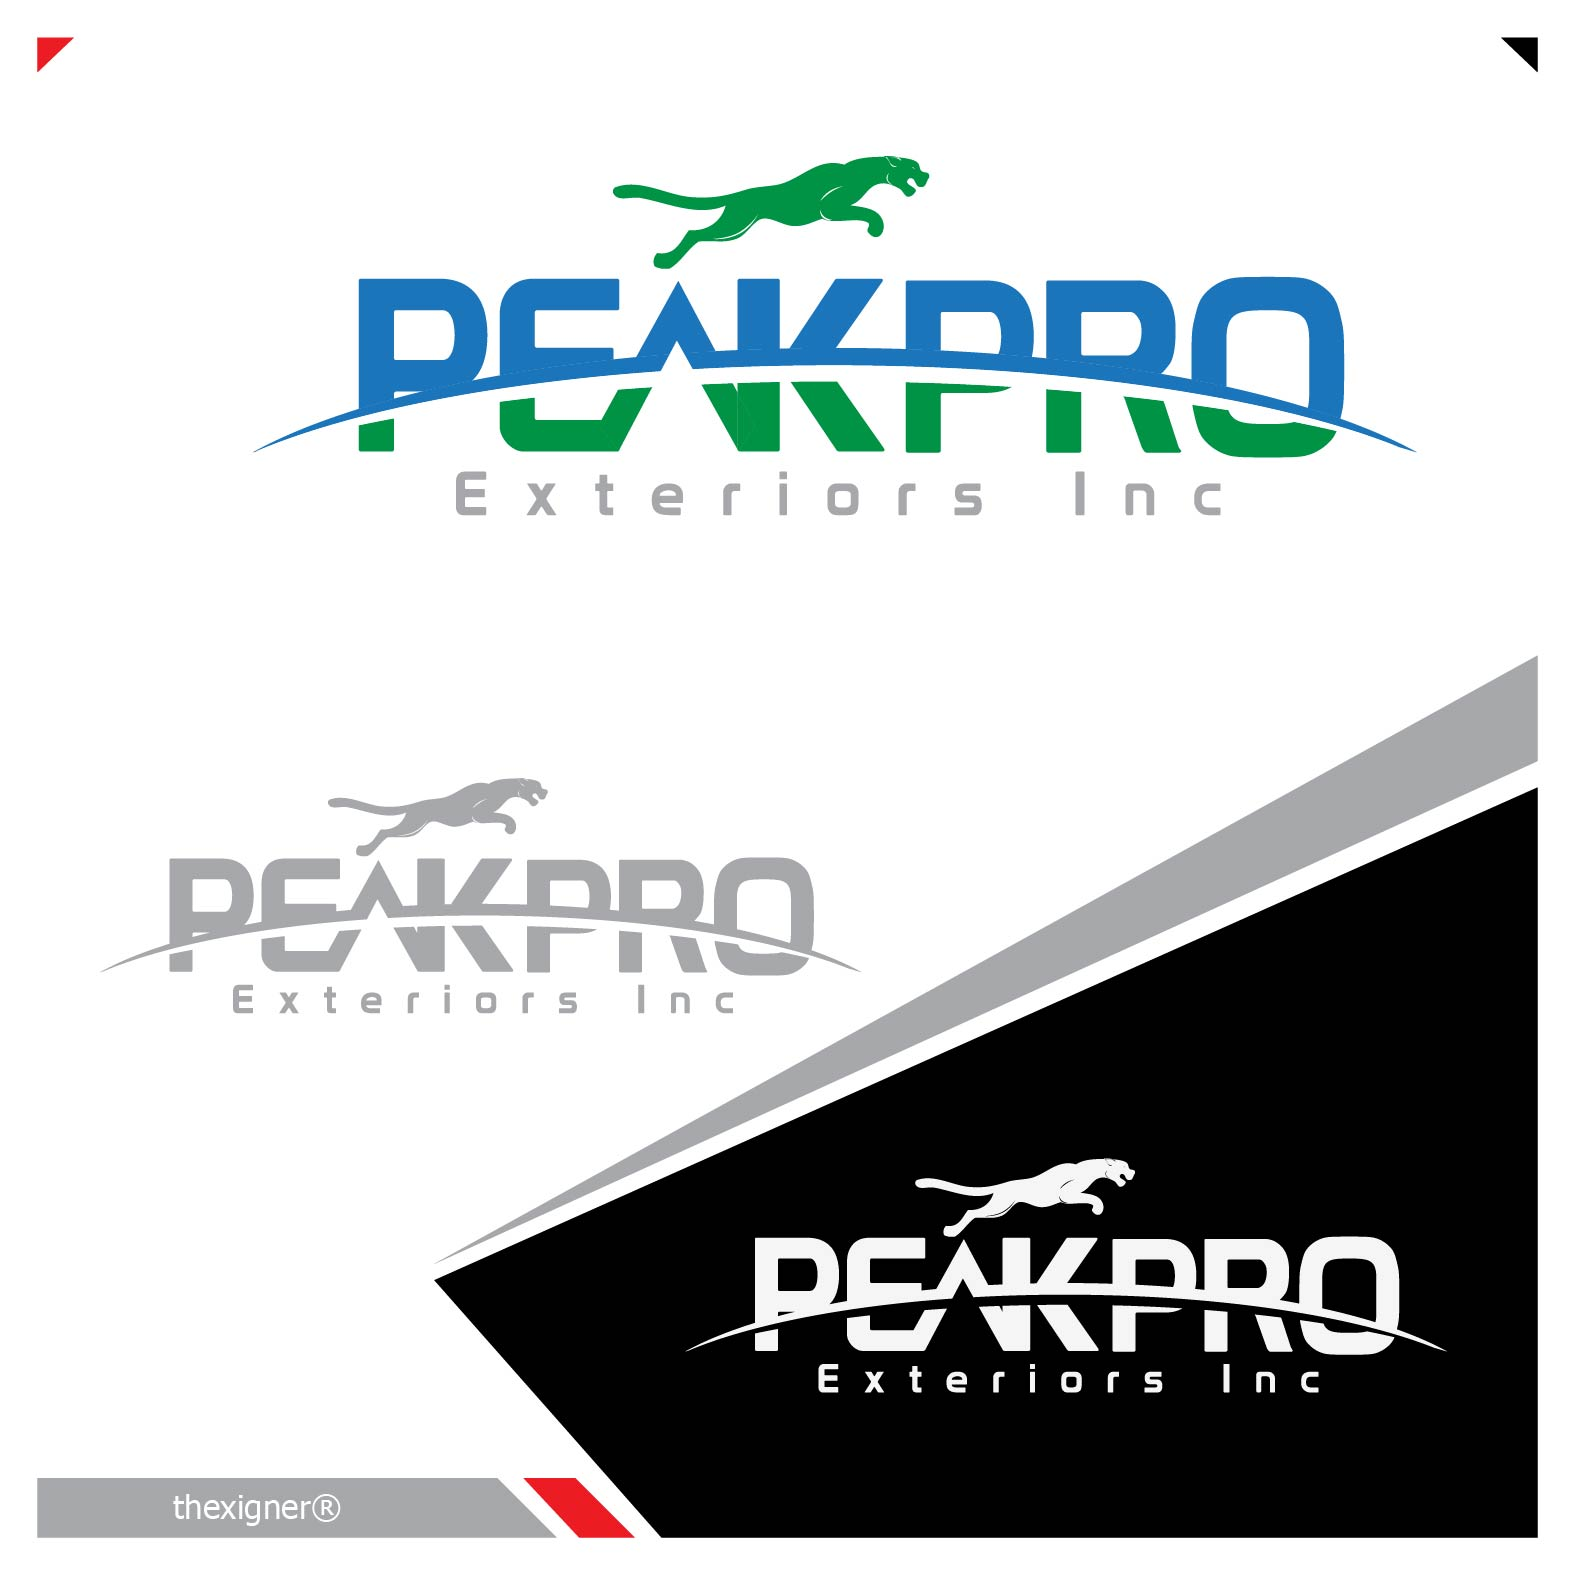 Logo Design by lagalag - Entry No. 93 in the Logo Design Contest Captivating Logo Design for Peakpro Exteriors Inc..